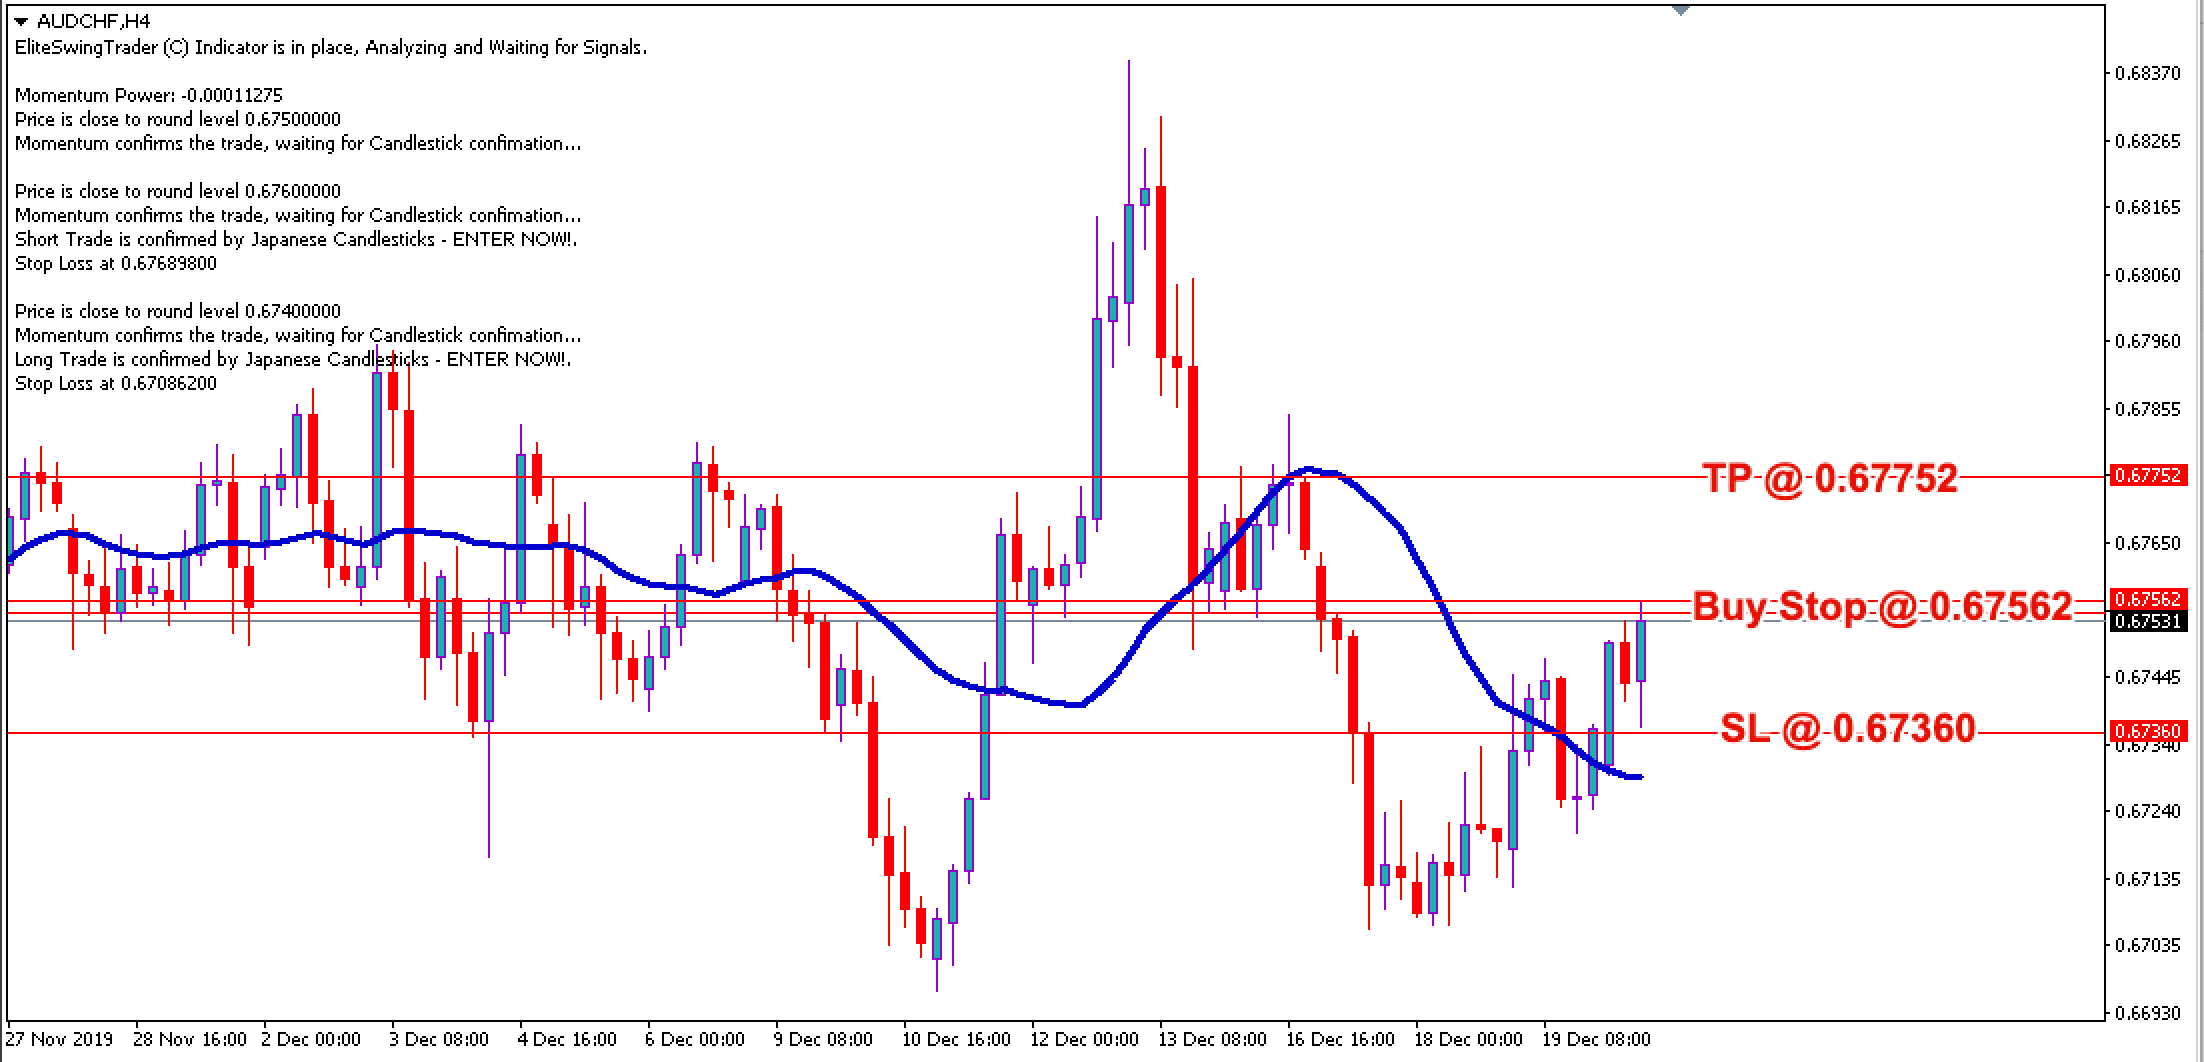 AUD/CHF Daily Price Forecast – 20th Dec 2019